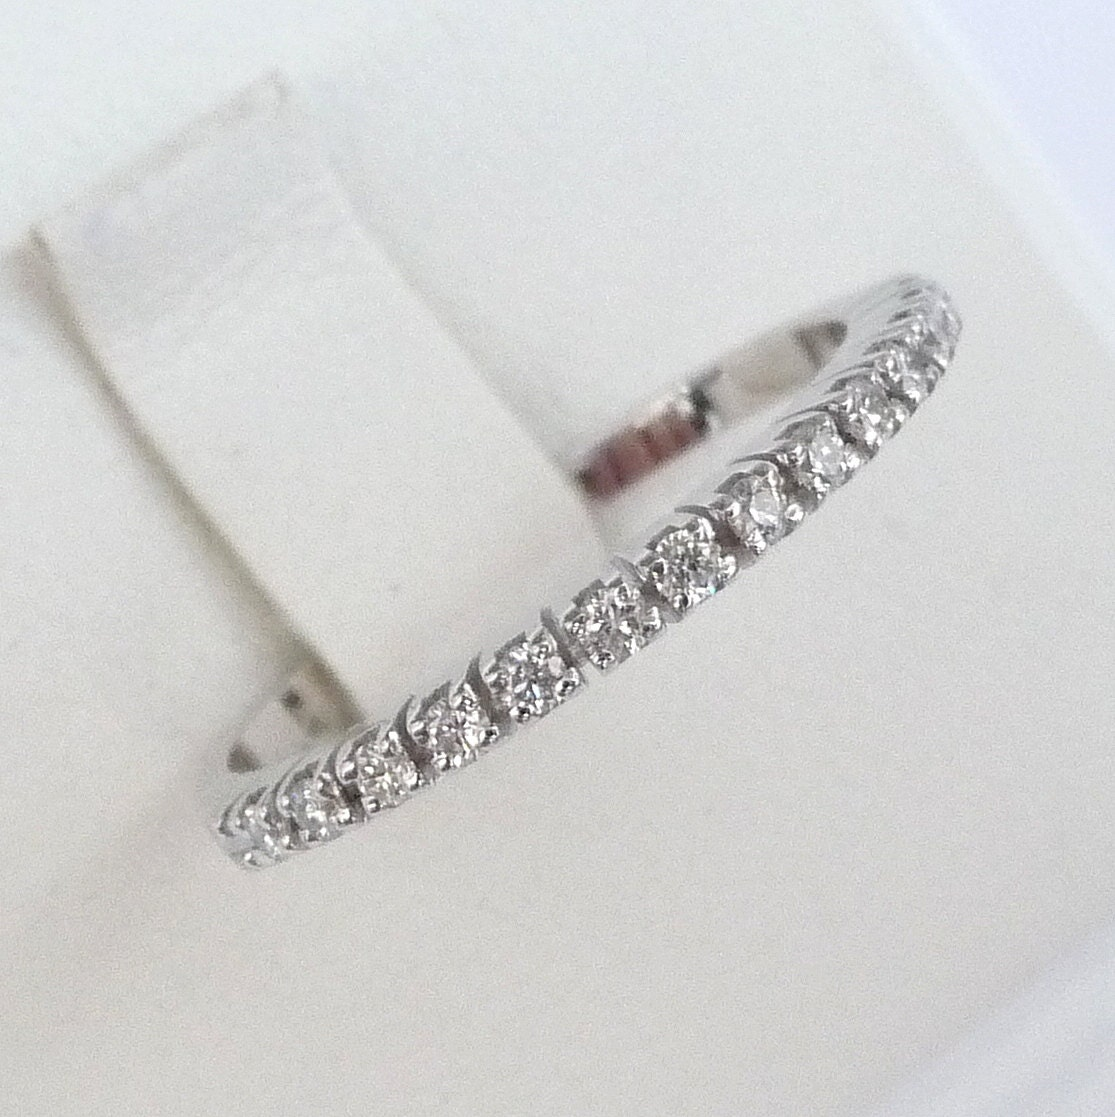 eternity band ring engagement ring wedding ring white